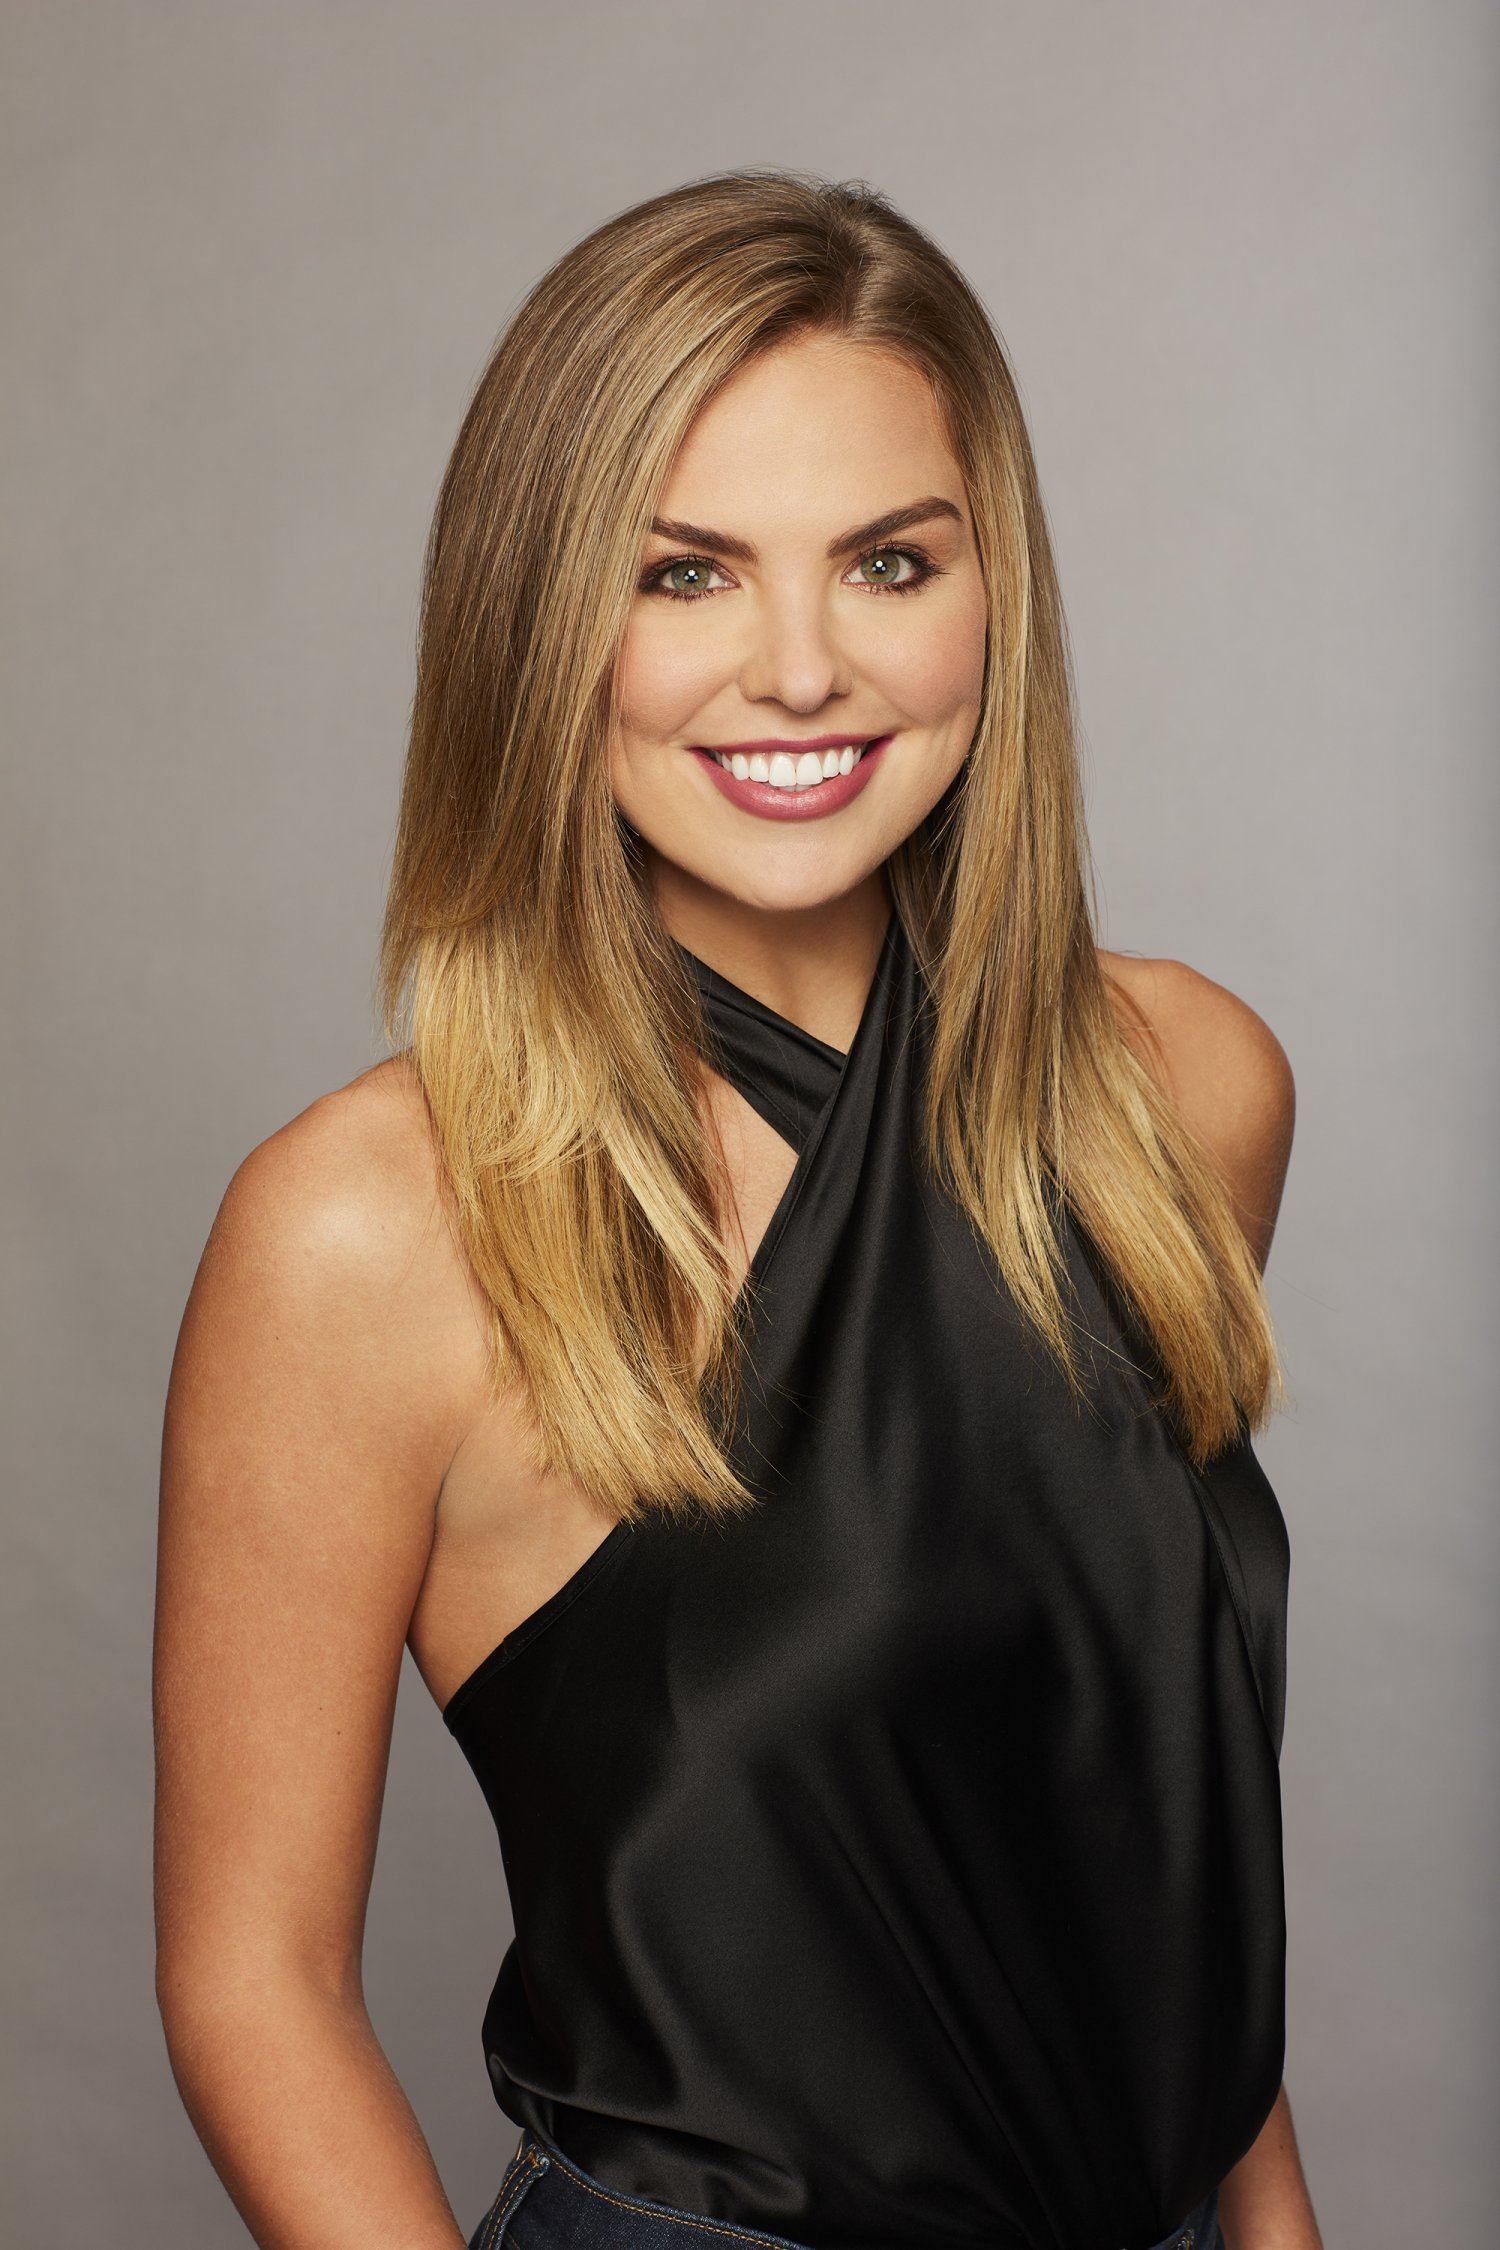 Bachelor 23 - Hannah Brown - Discussion - *Sleuthing Spoilers* - Page 2 4840-o